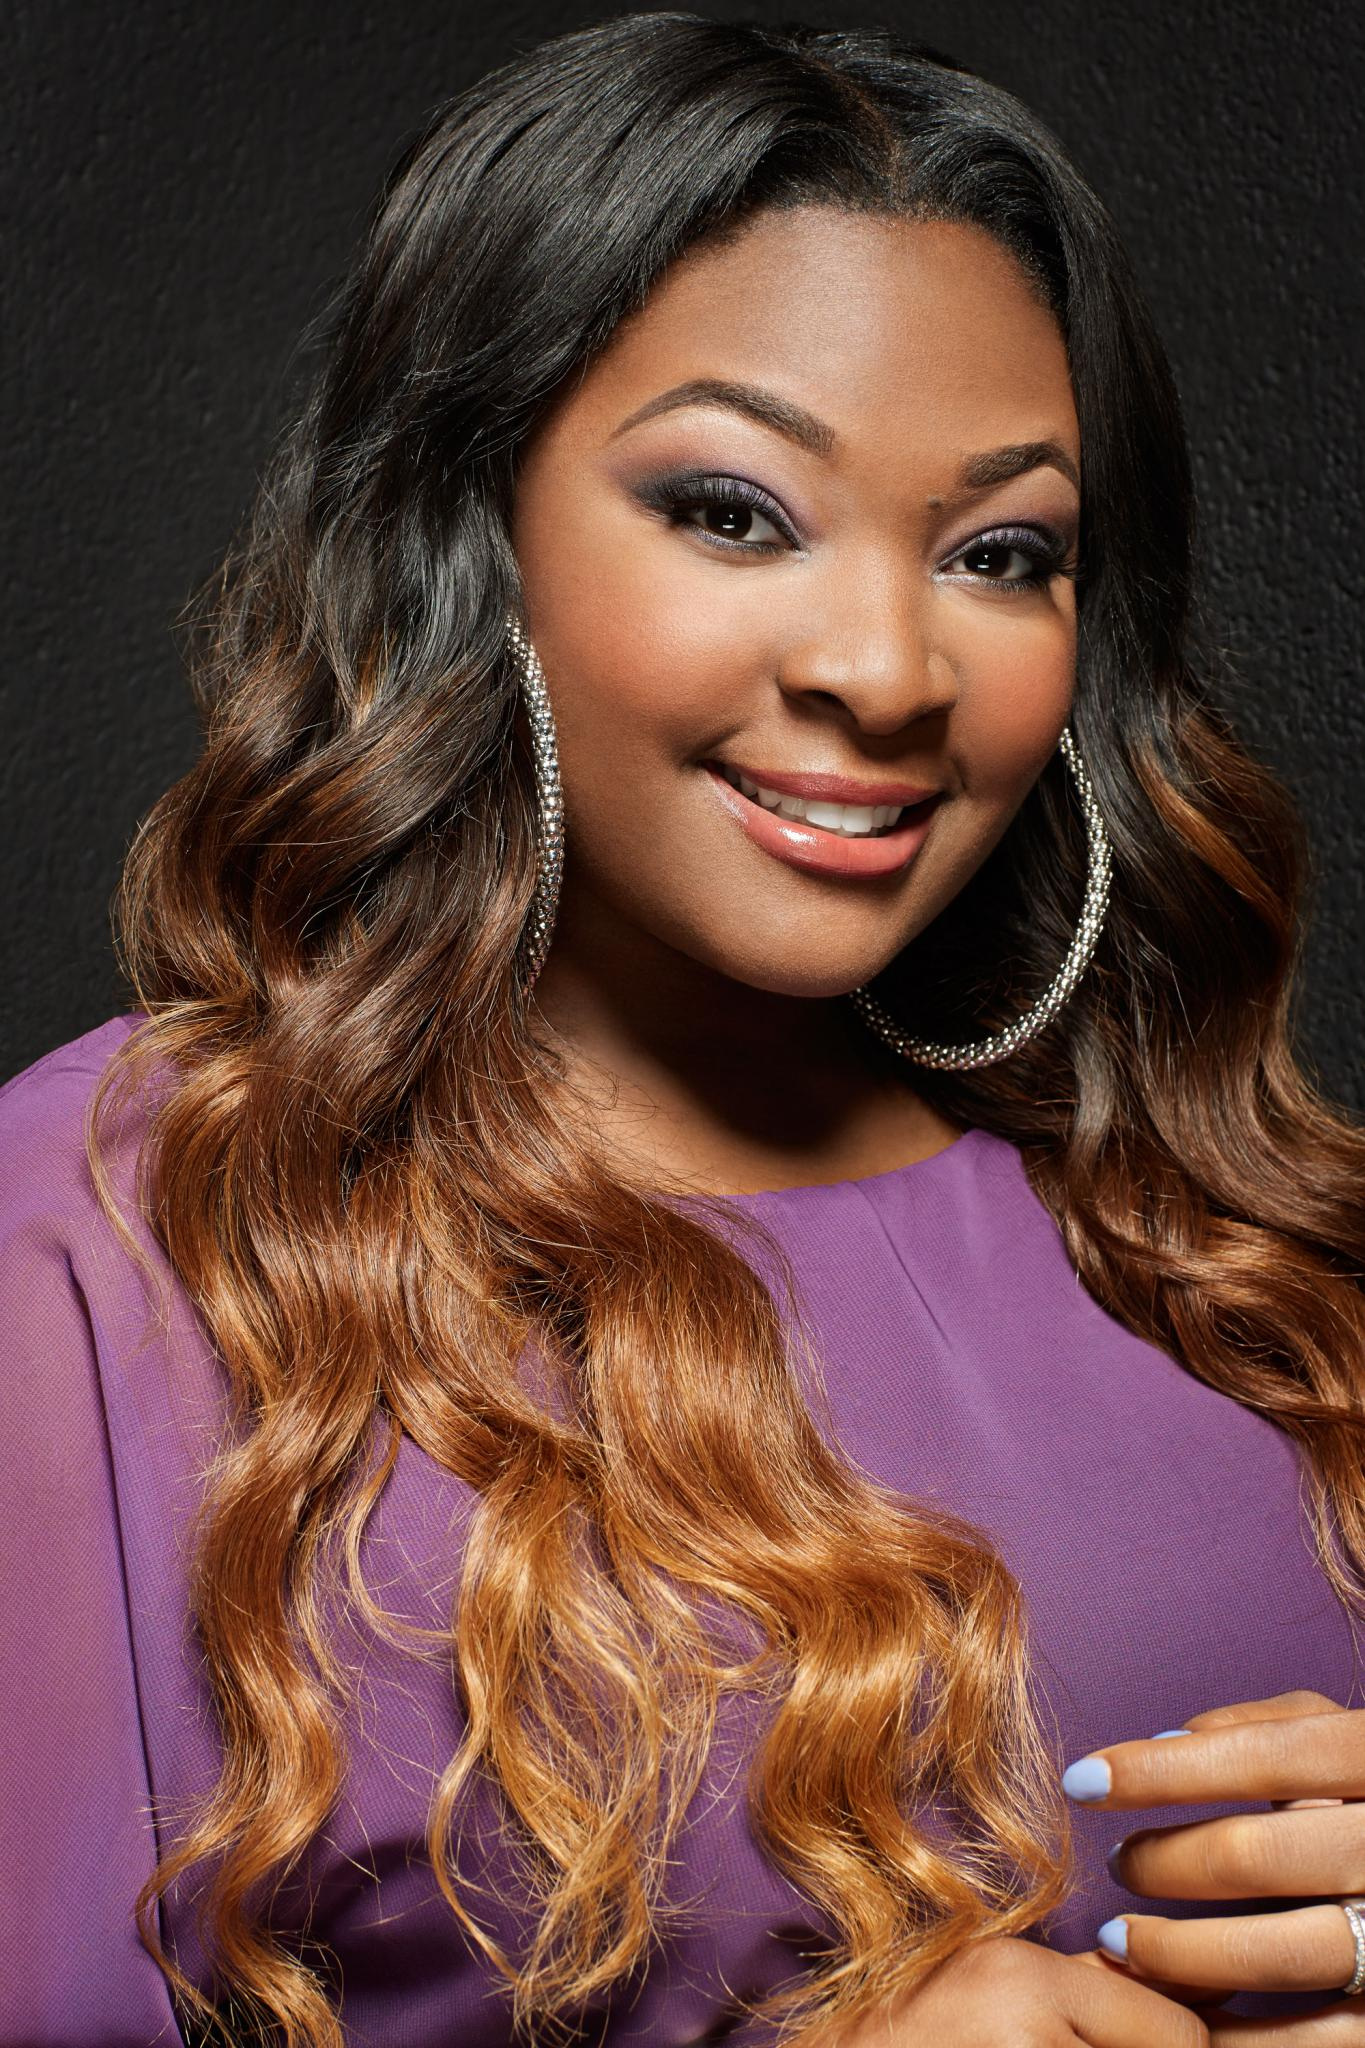 EXCLUSIVE: Listen to 'Idol' Winner Candice Glover's New Song 'Forever That Man'